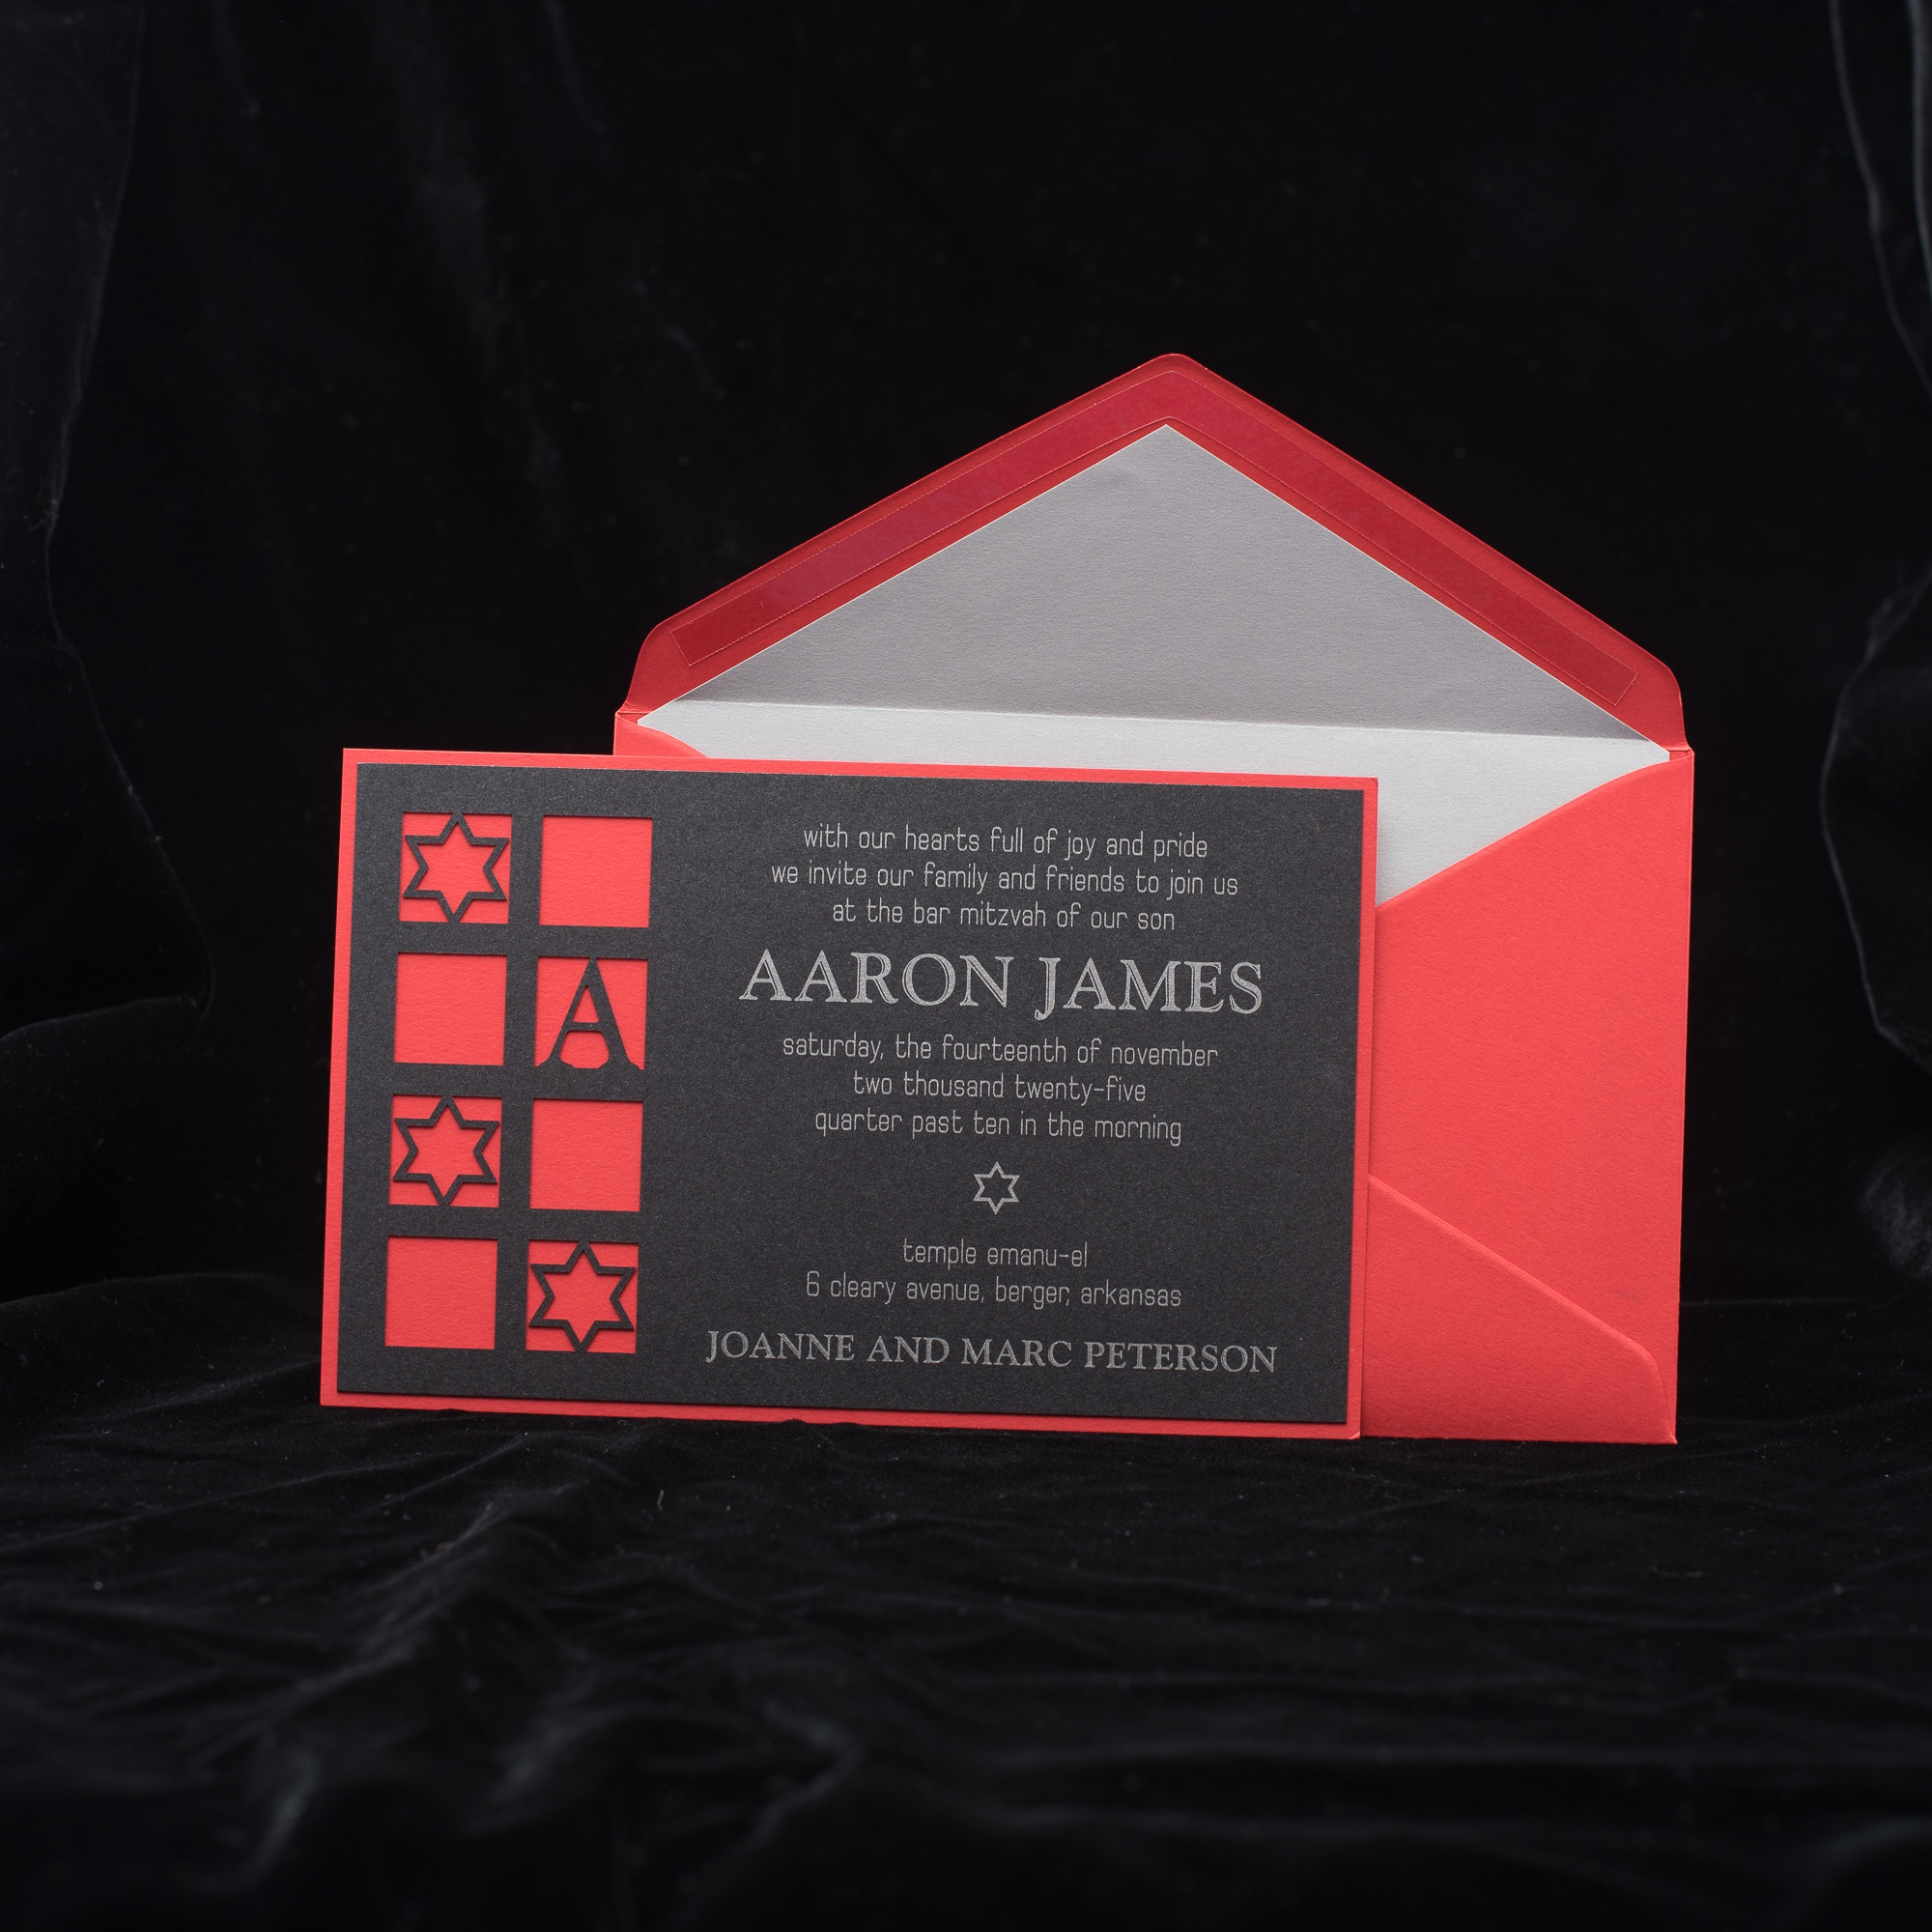 Star of david and initial are featured in lasercut windows of this contemporary bar mitzvah invitation in black, silver, and red.  Staccato proudly serves mitzvah celebration in northern Virginia, DC, and Maryland, and ships nationwide.